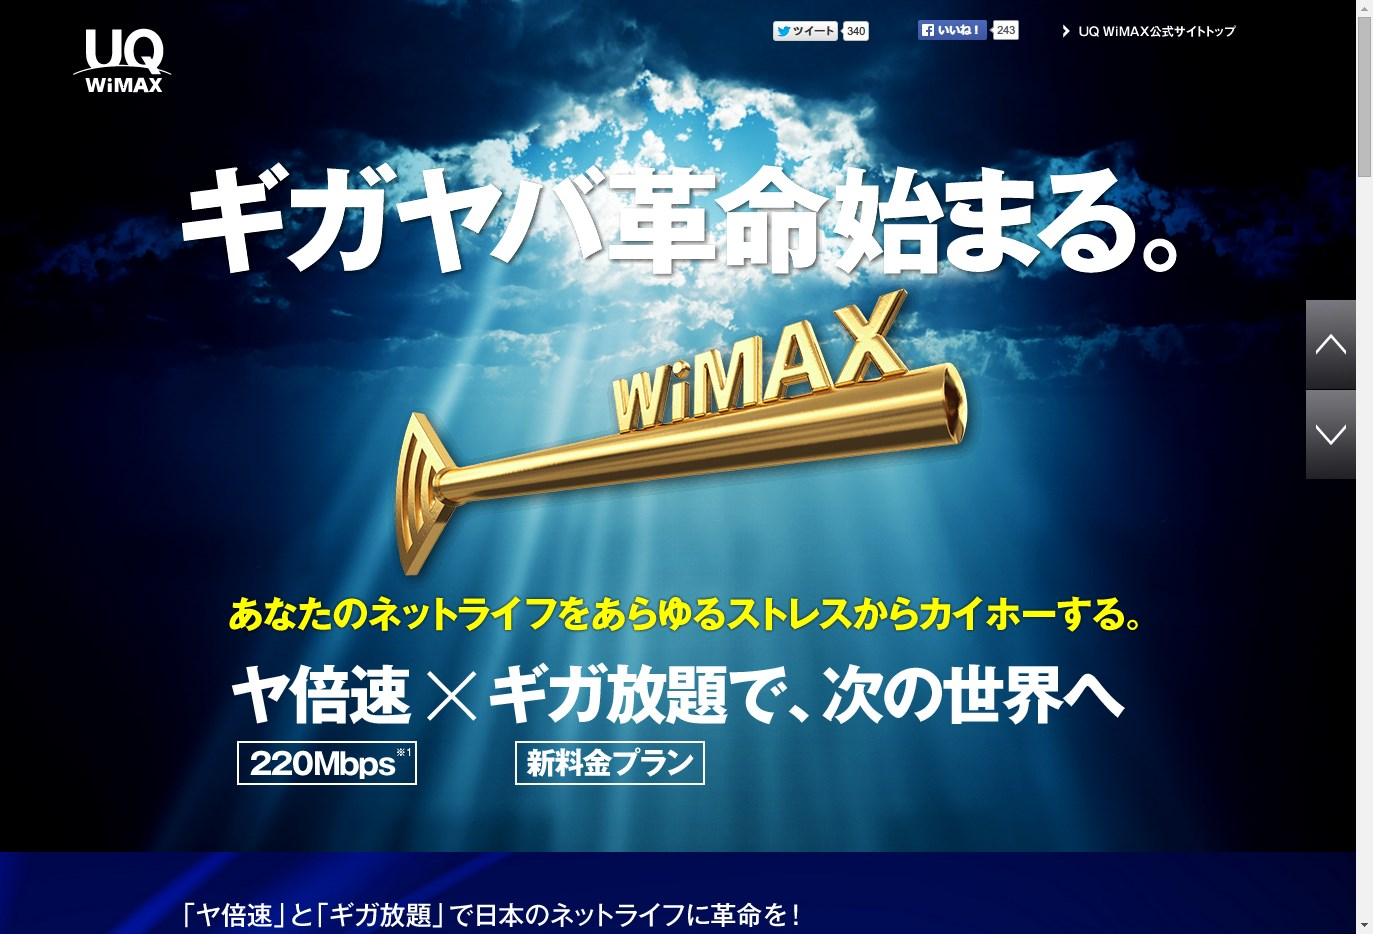 WiMAX 2+ 220Mbps 003